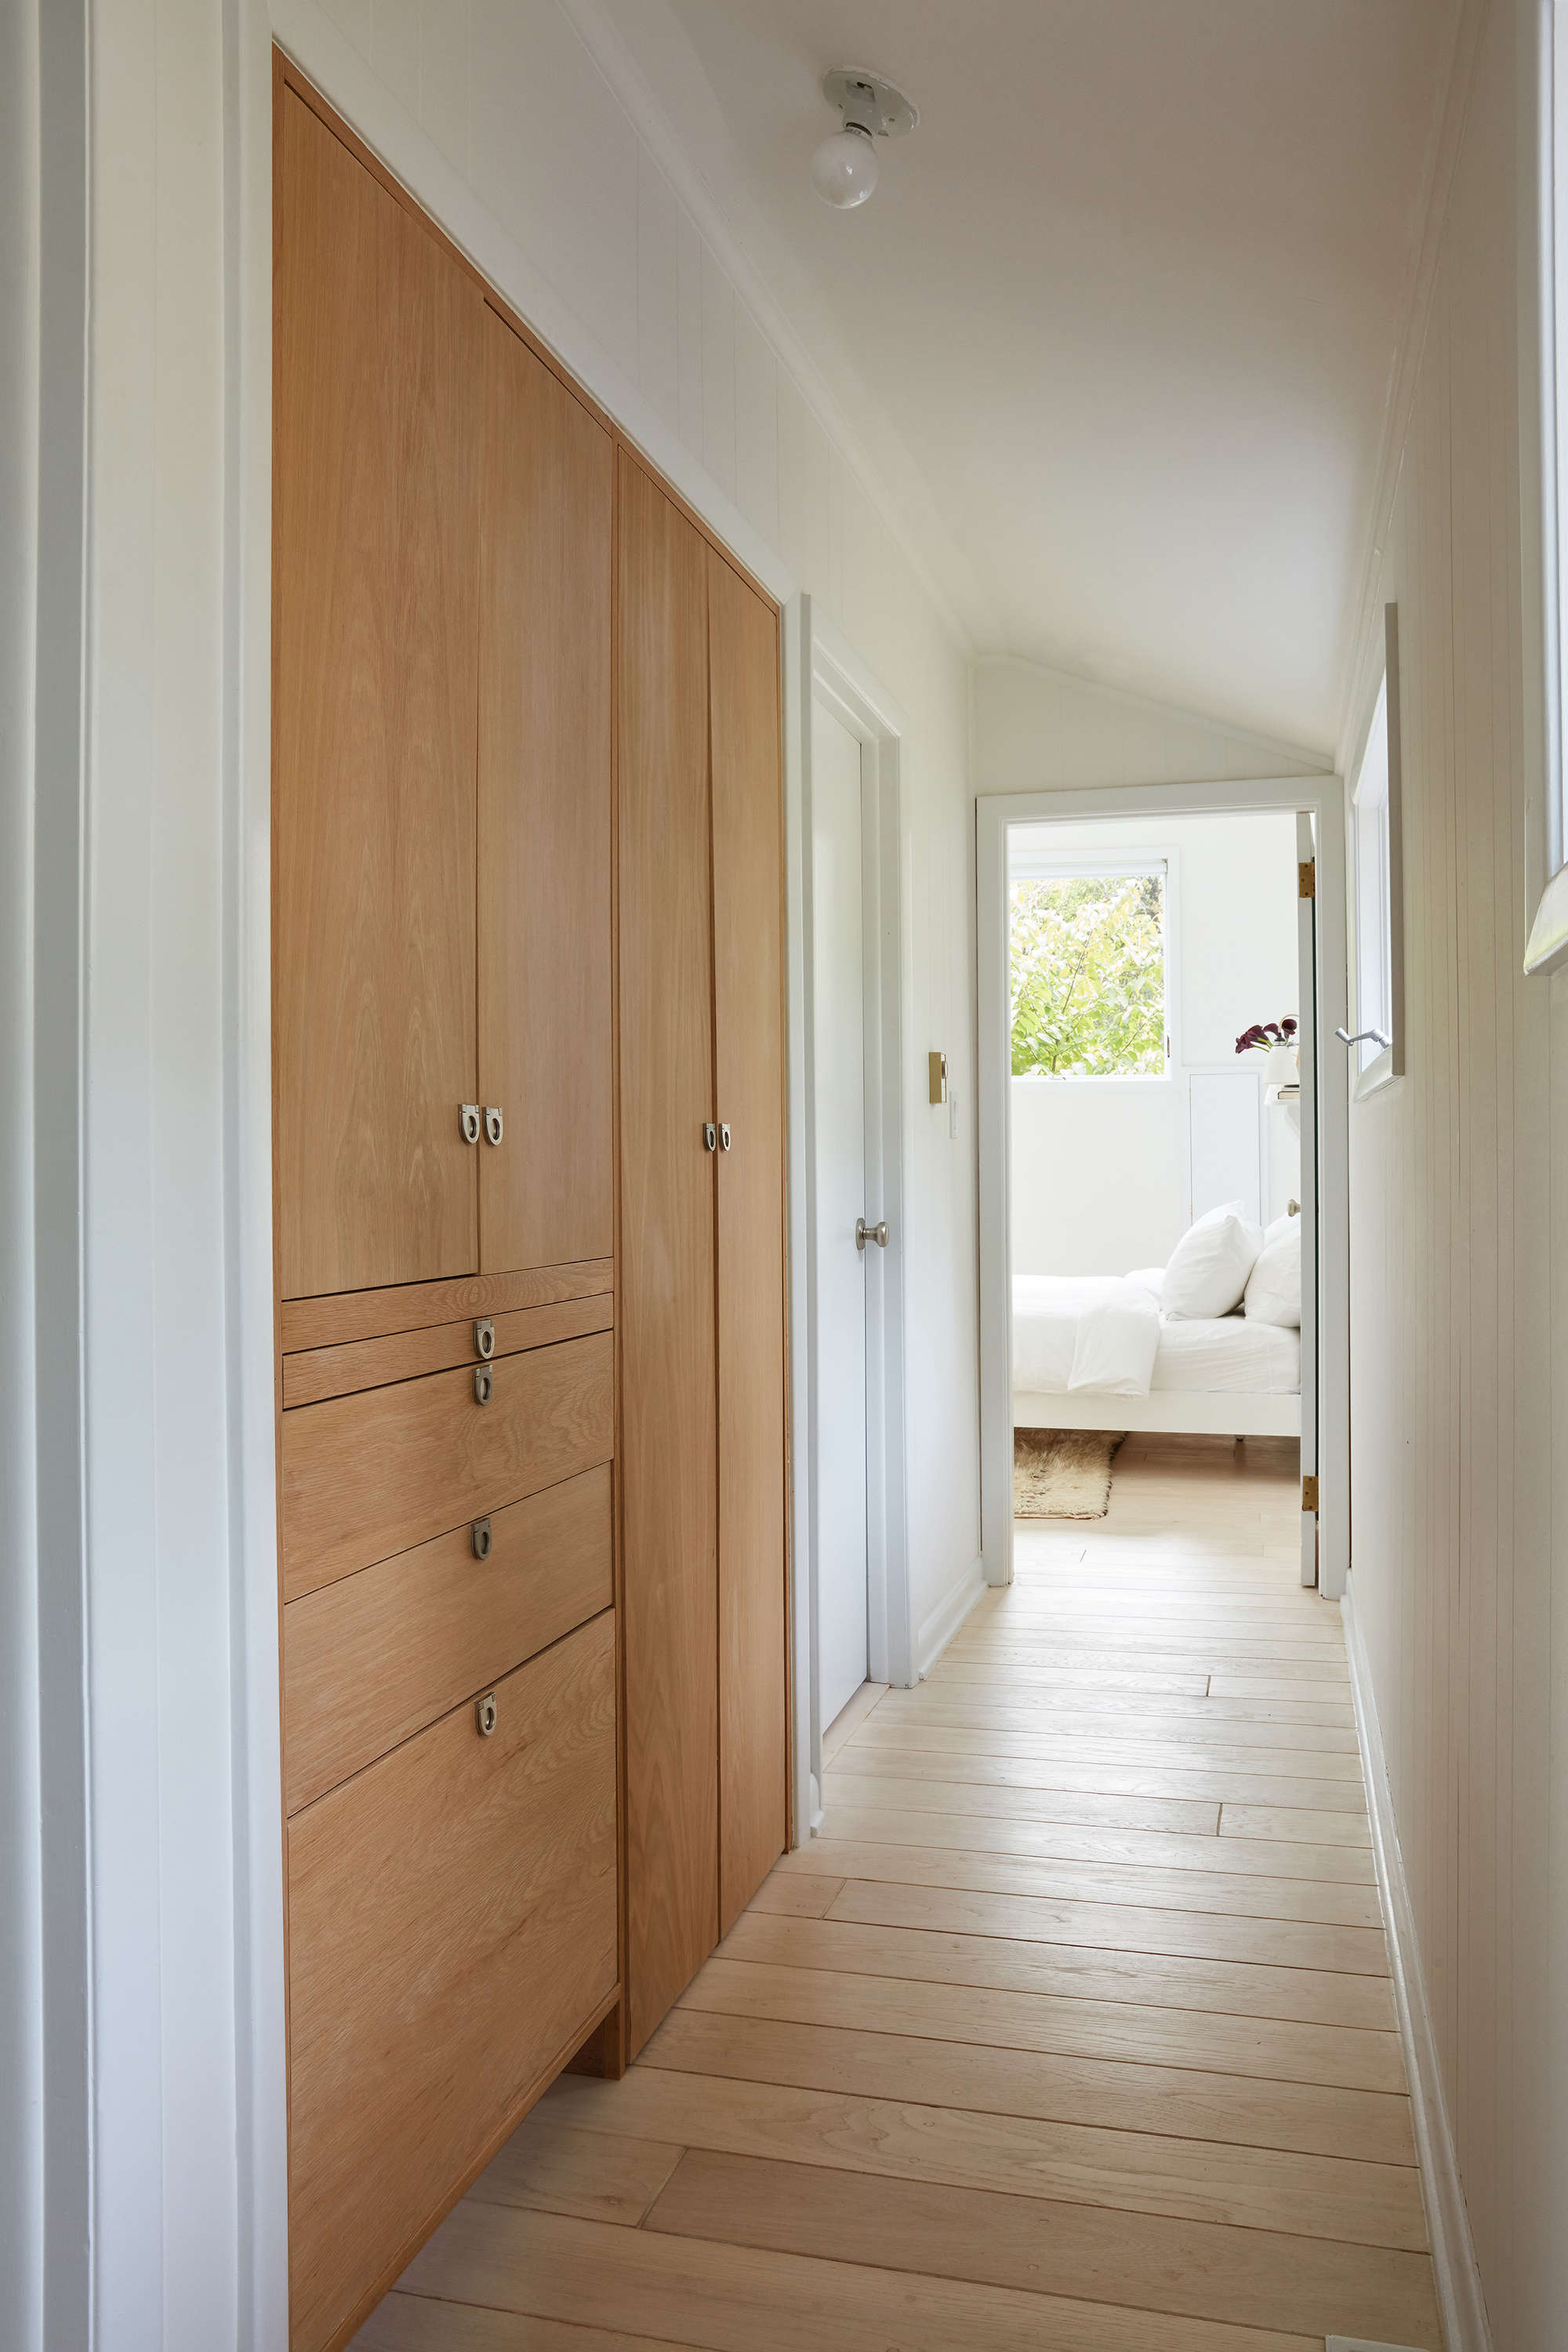 &#8\2\20;we installed acustom laundry cabinet in the hallway (inspired by 17